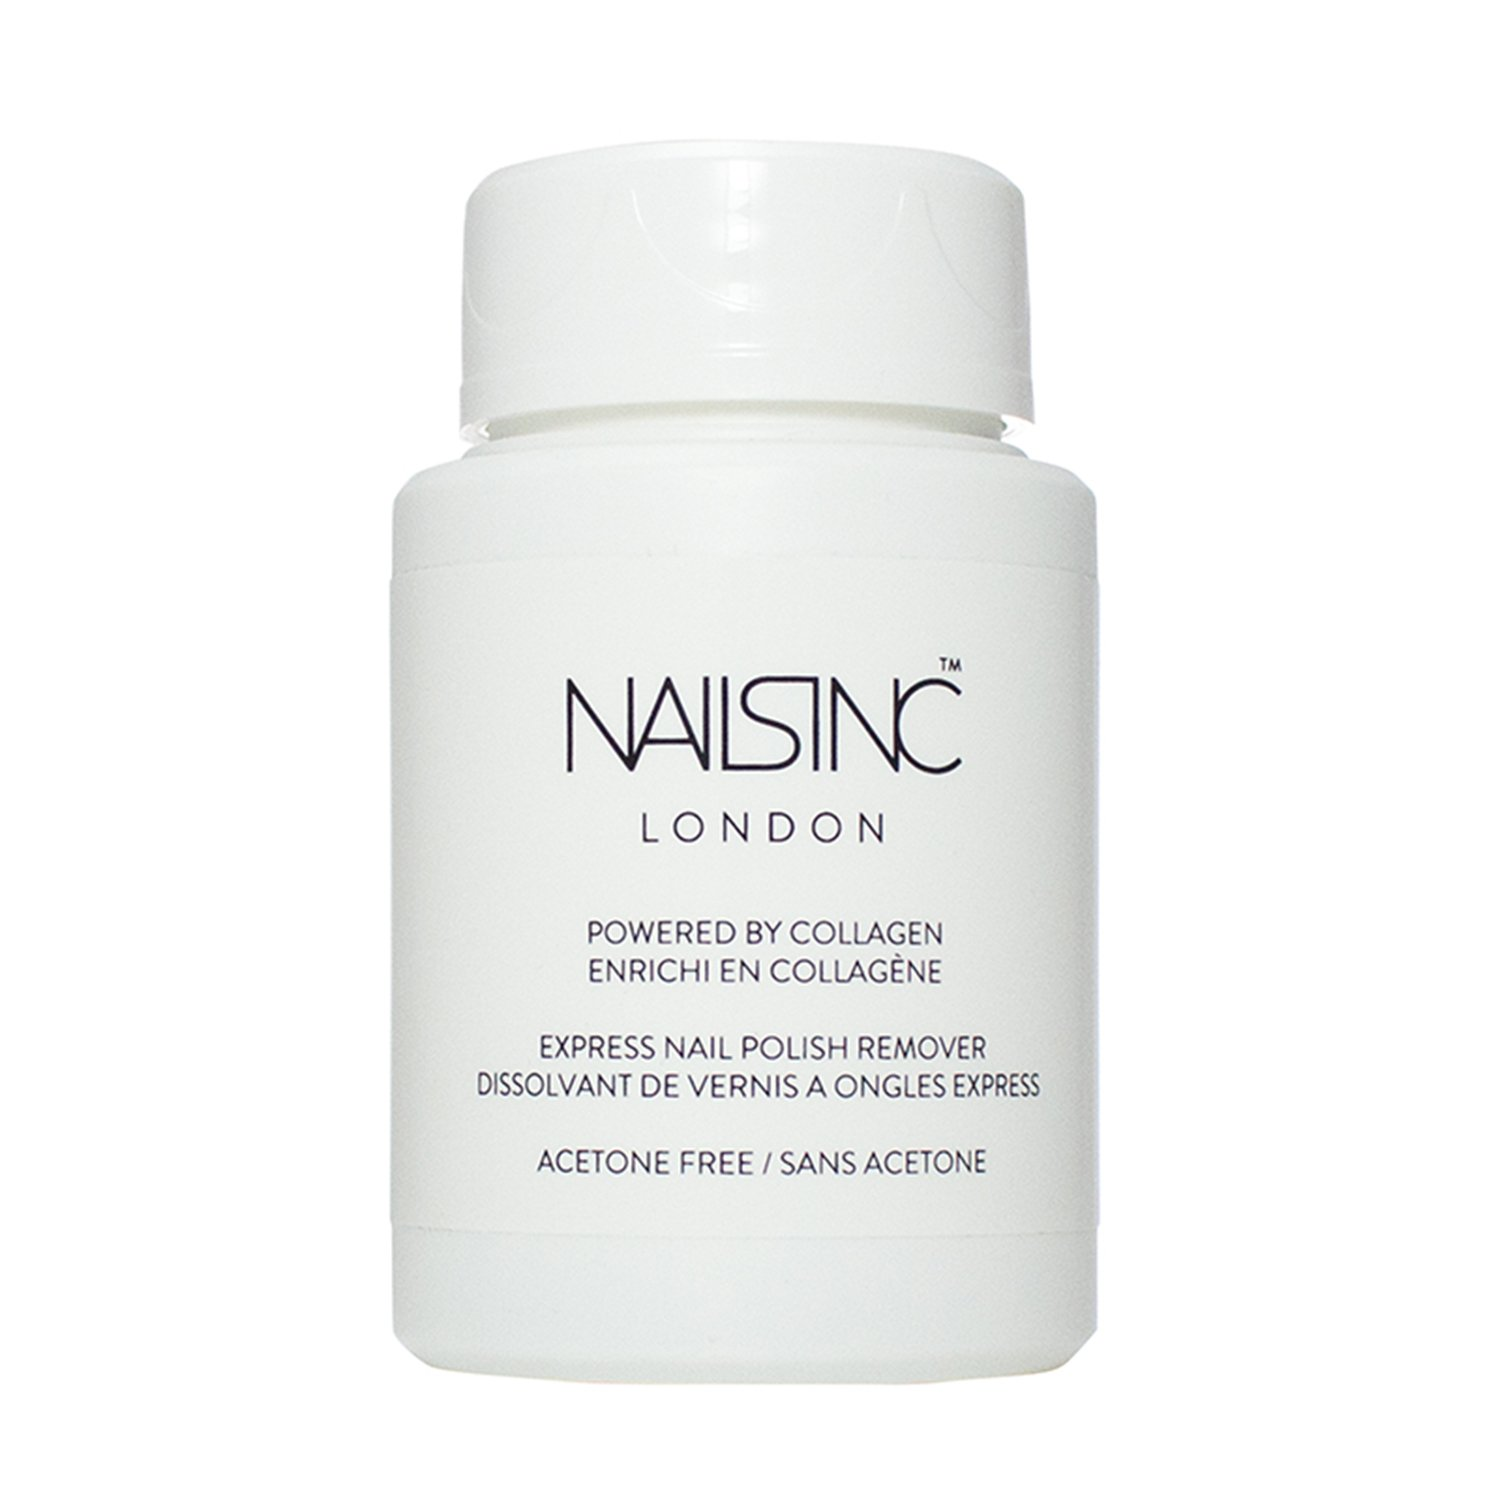 Nails Inc Powered By Collagen Express Nail Polish Remover Pot 8522